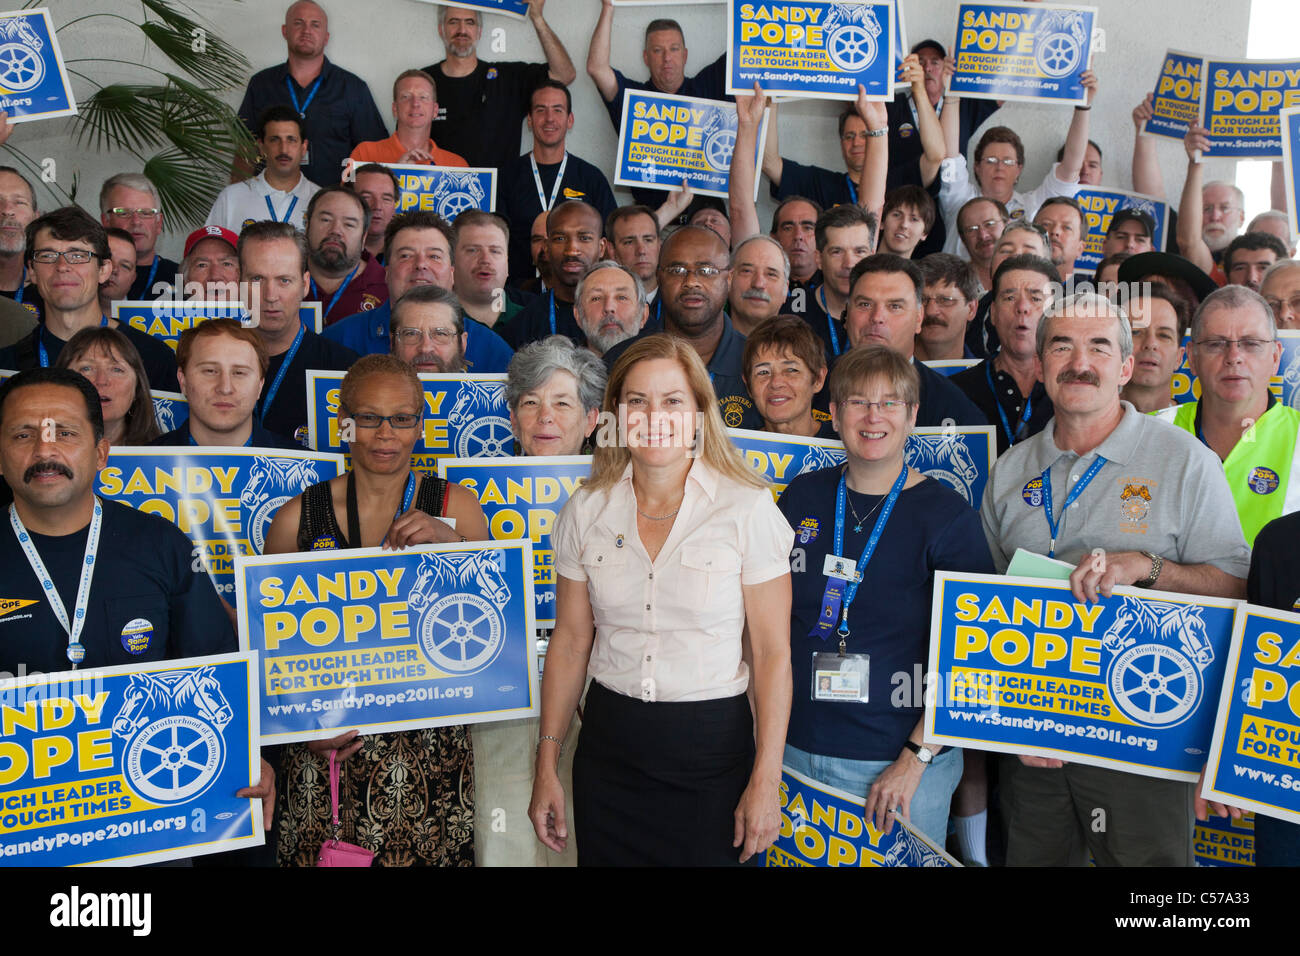 Teamster Reform Presidential Candidate Sandy Pope with Supporters - Stock Image